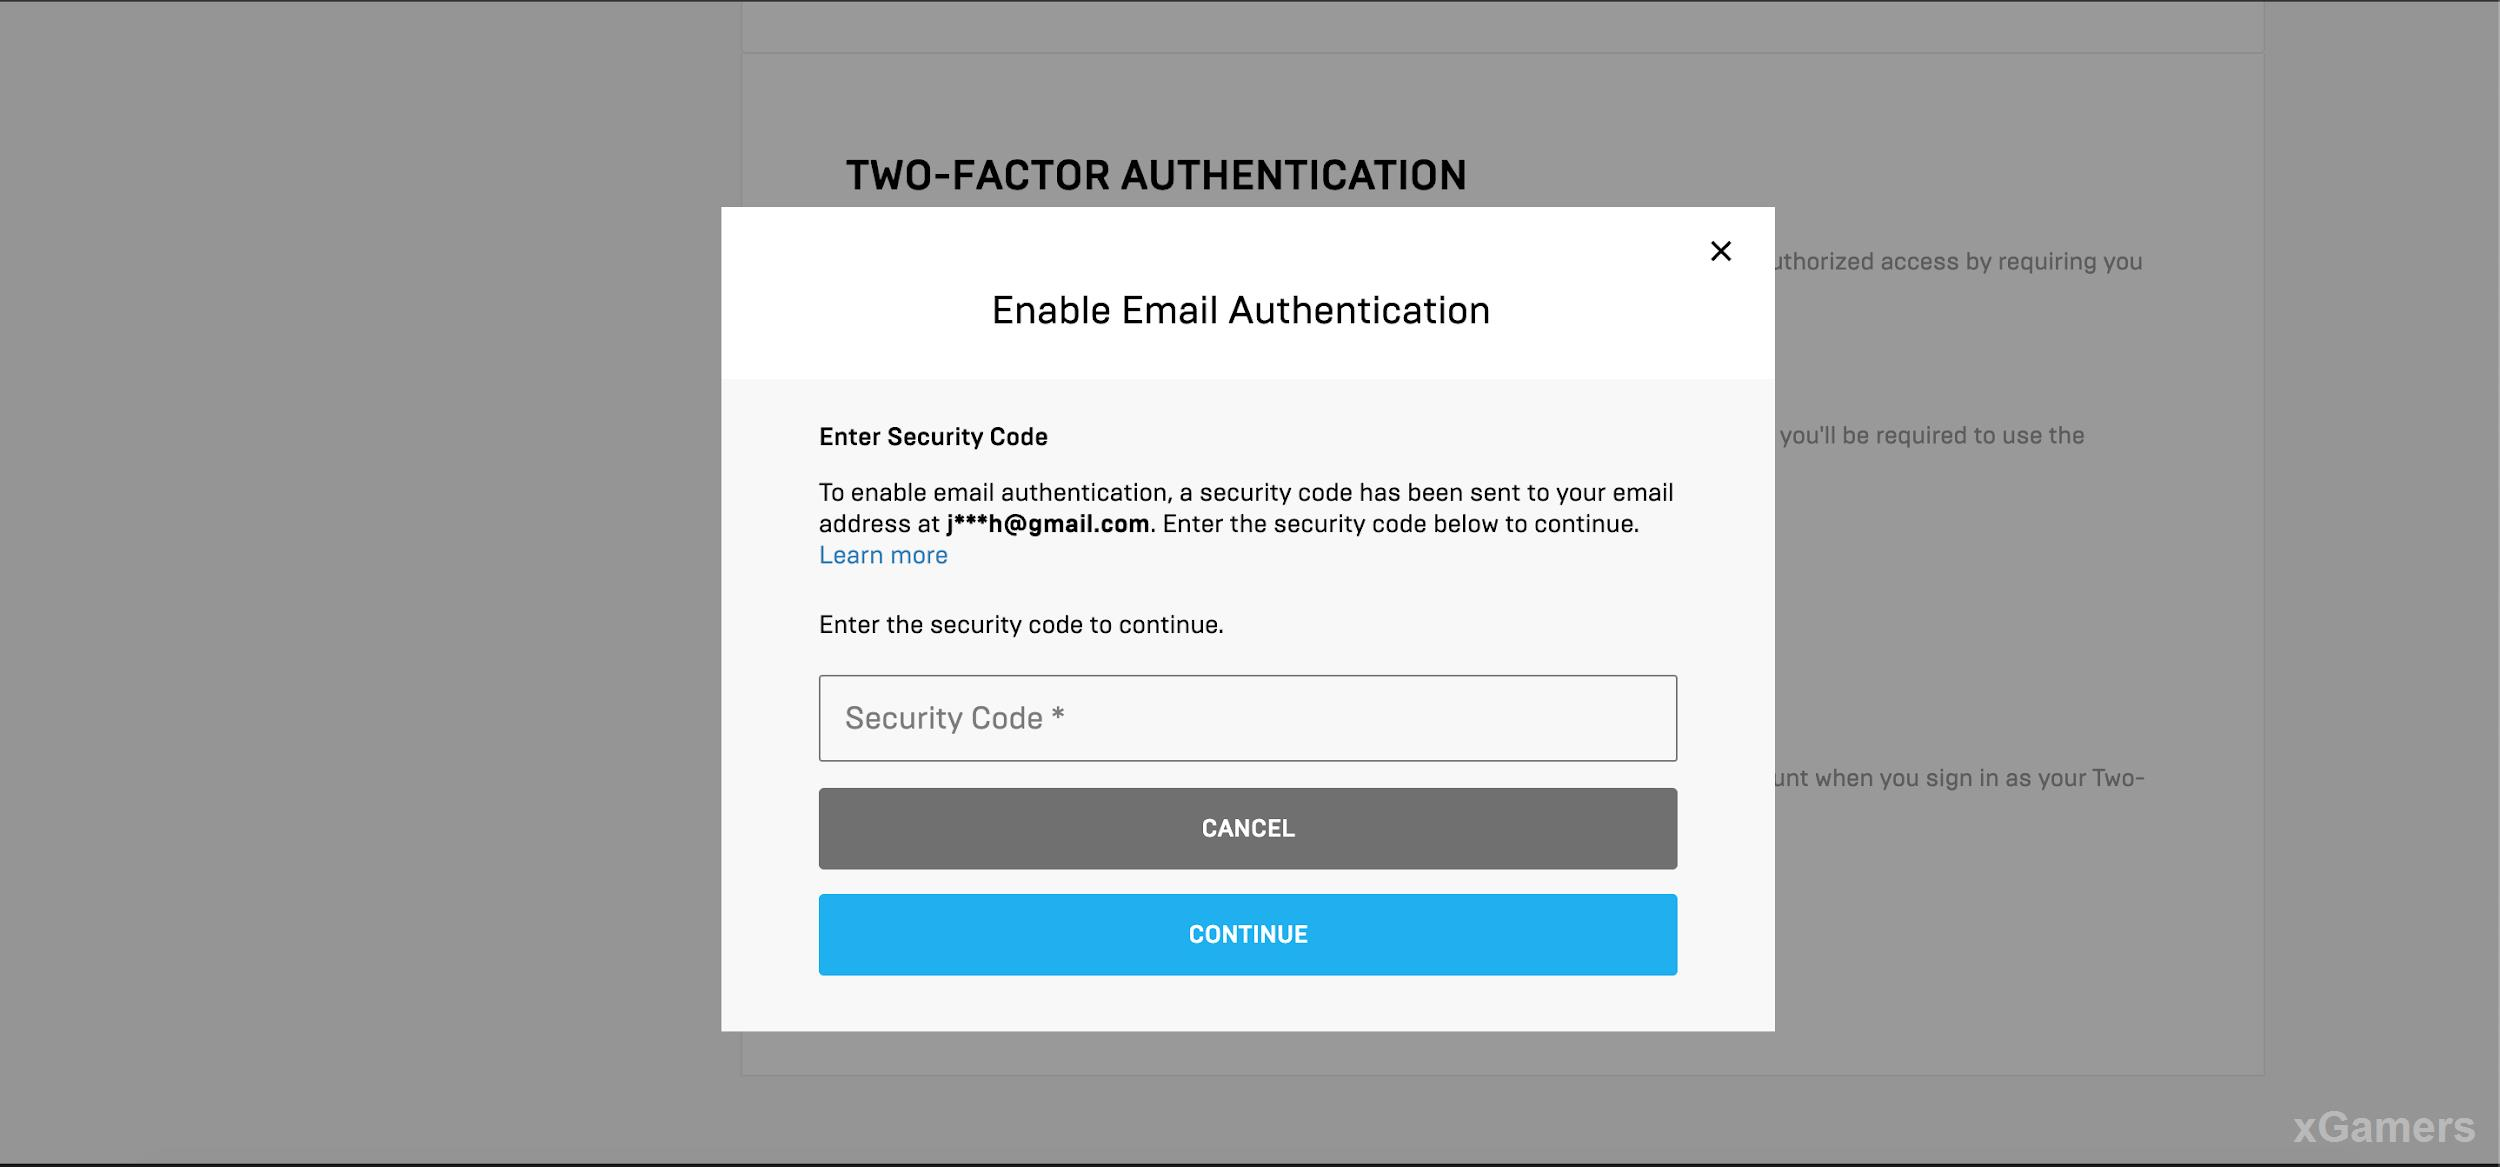 Email Authentication (2FA) Method